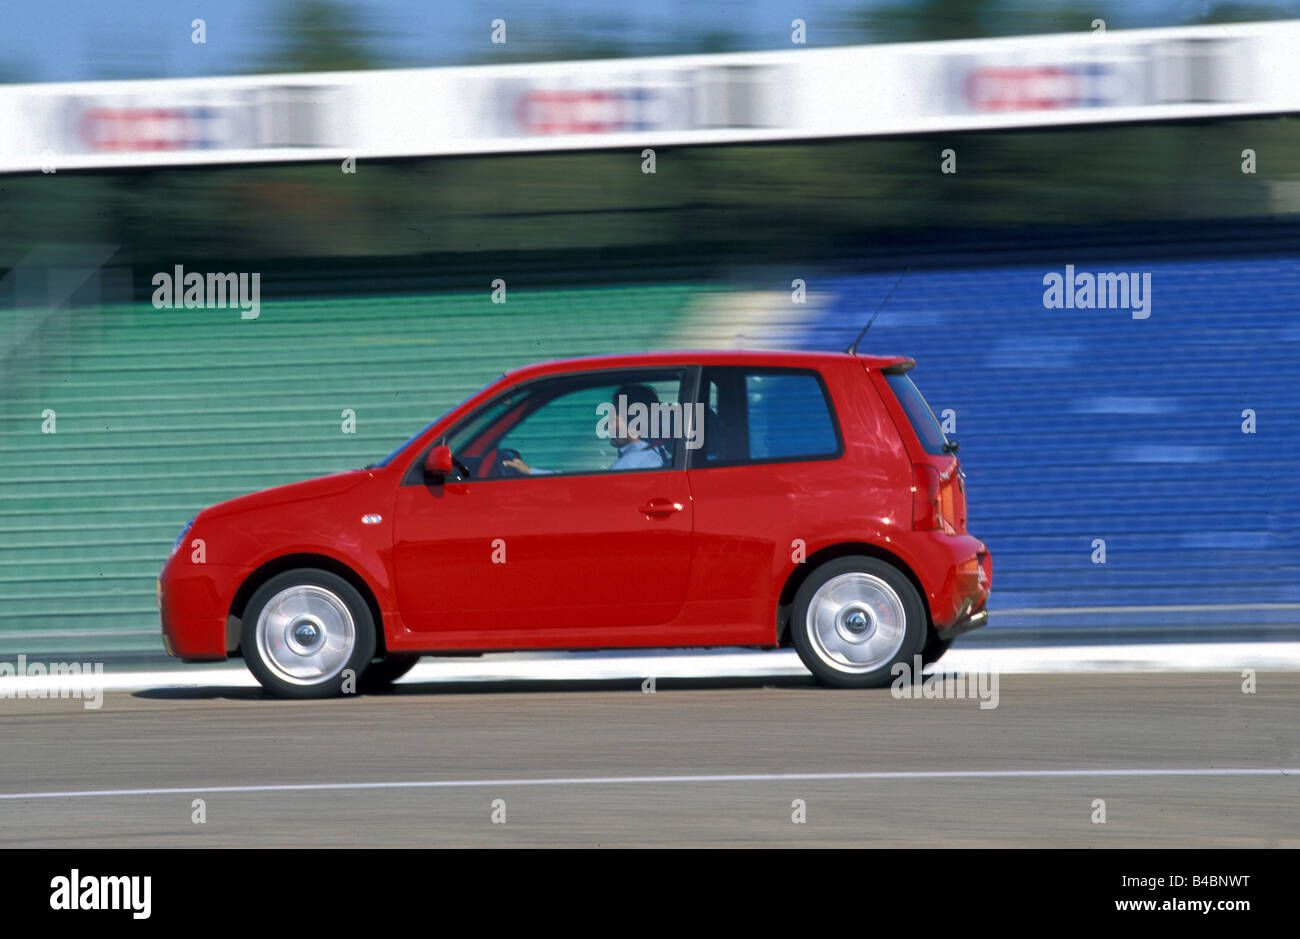 car vw volkswagen lupo gti model year 1998 2003 red miniapprox s stock photo royalty free. Black Bedroom Furniture Sets. Home Design Ideas